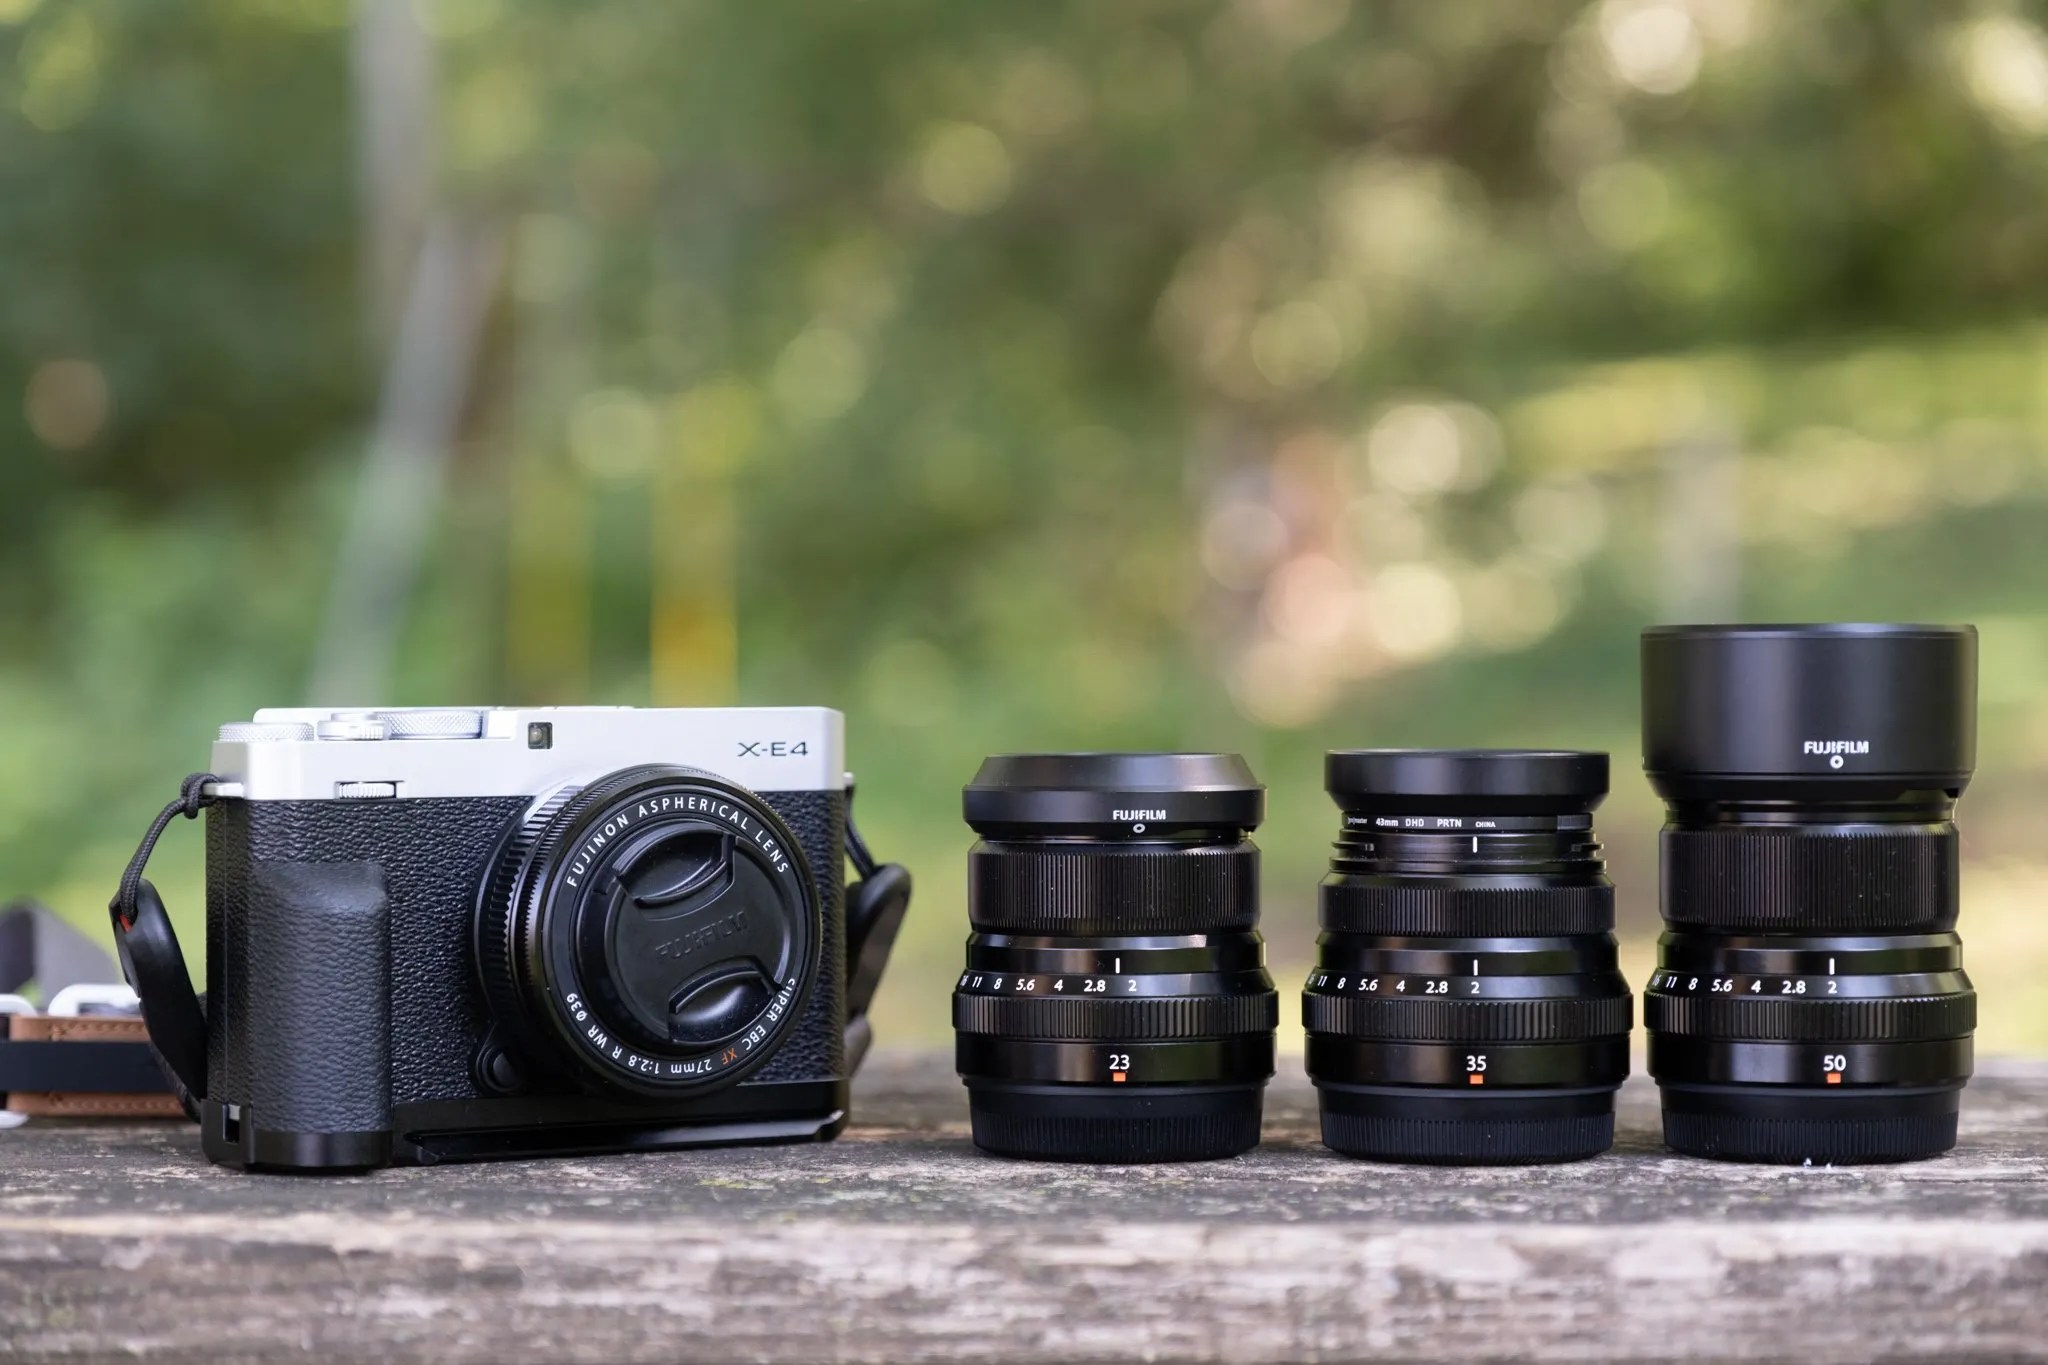 In the Fuji X-E4 review I talk about using the camera with the Fujicron lenses. Here's a photo of them all together.